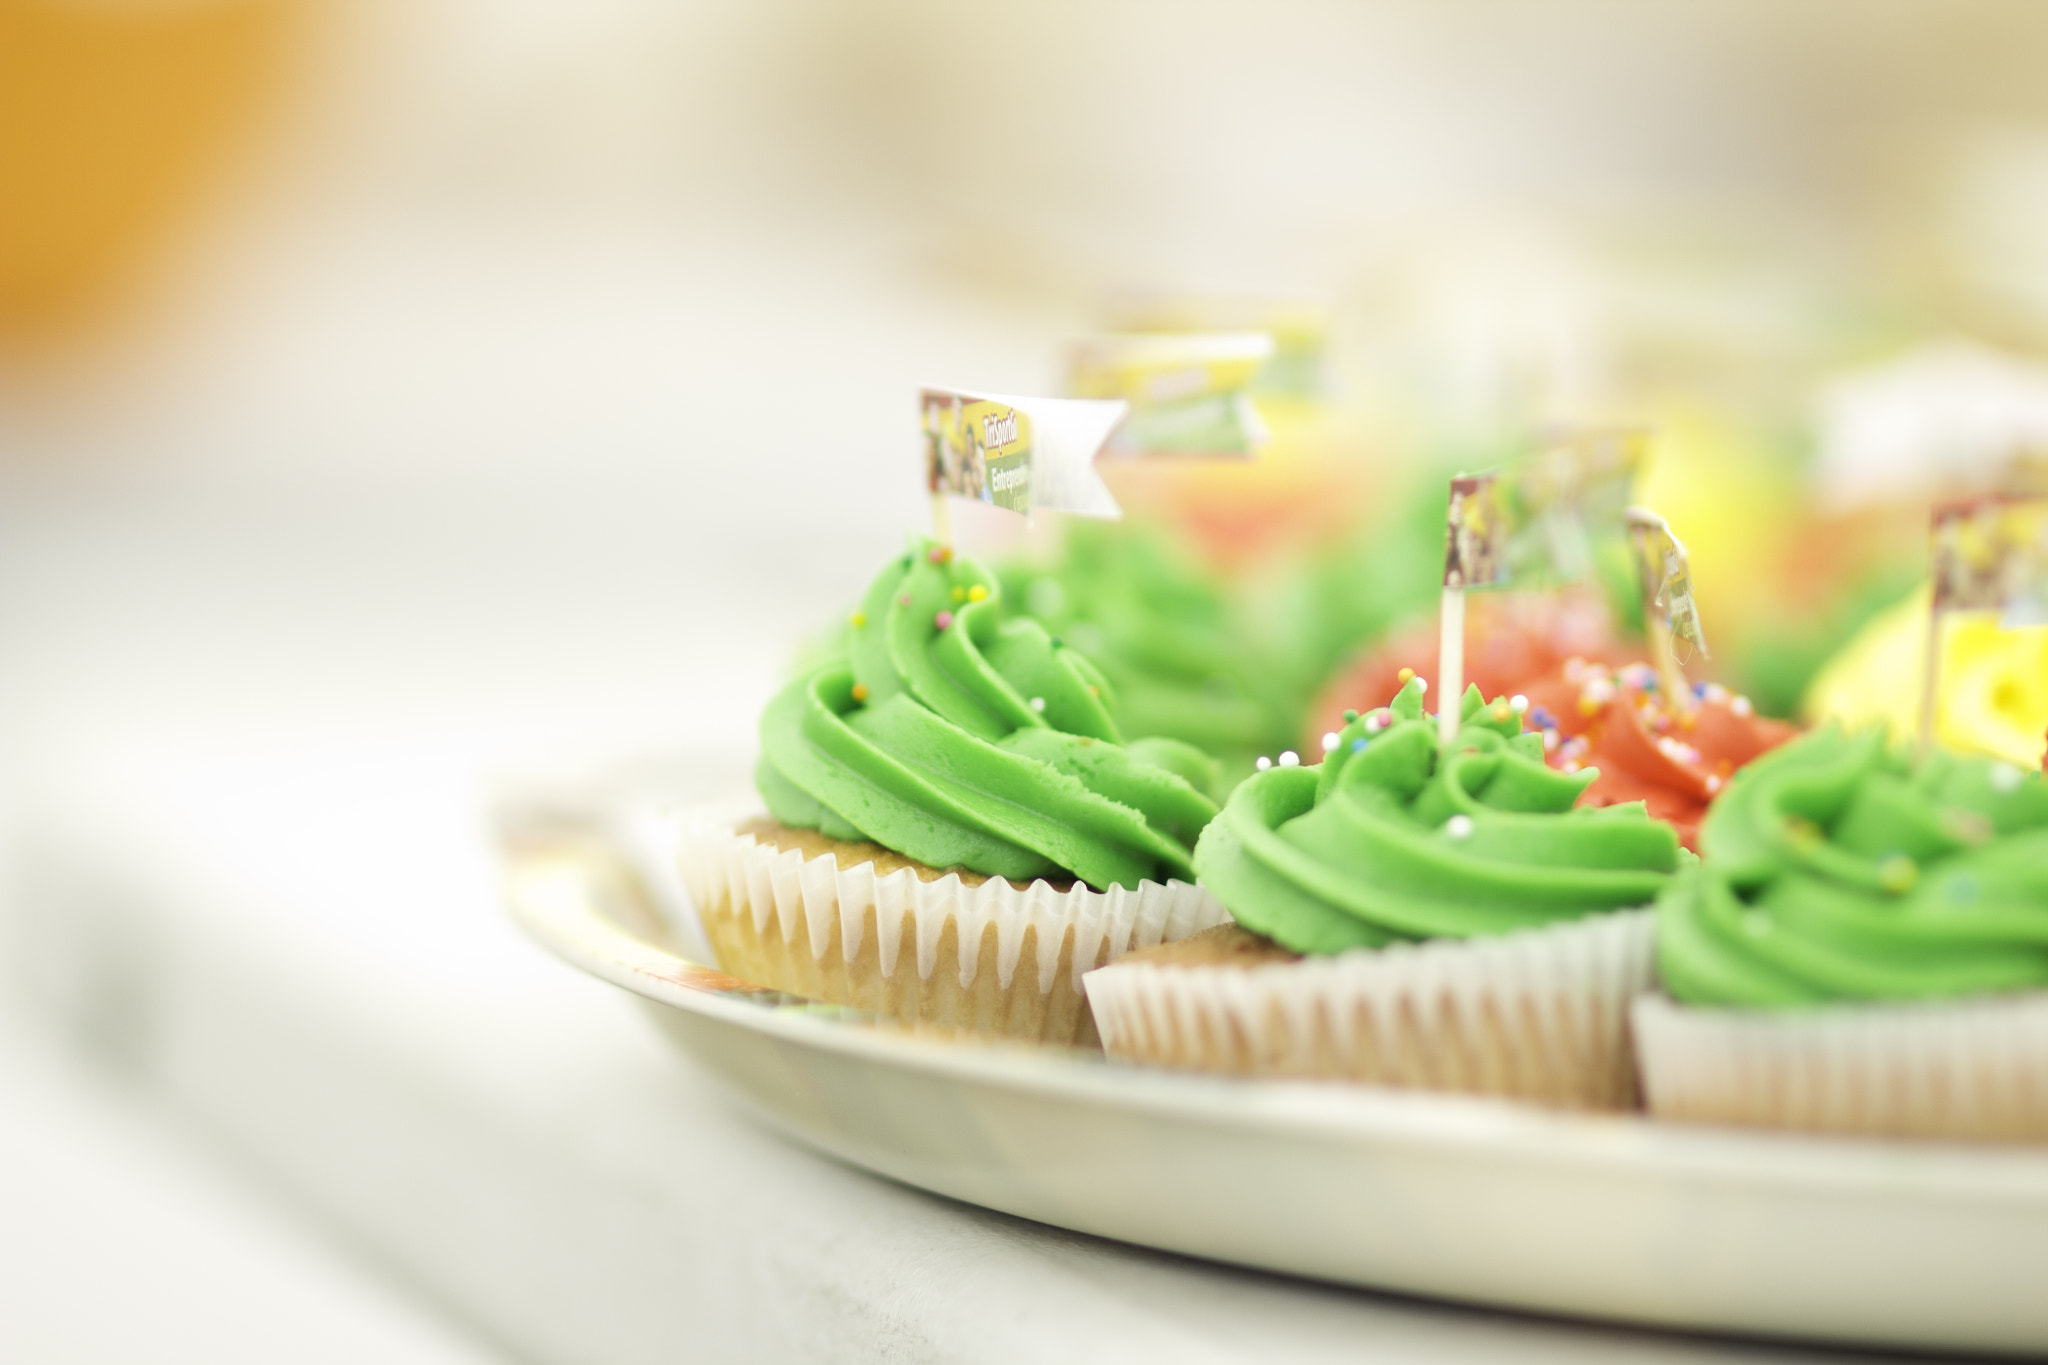 Photograph Cupcakes by Maxime Lapierre on 500px